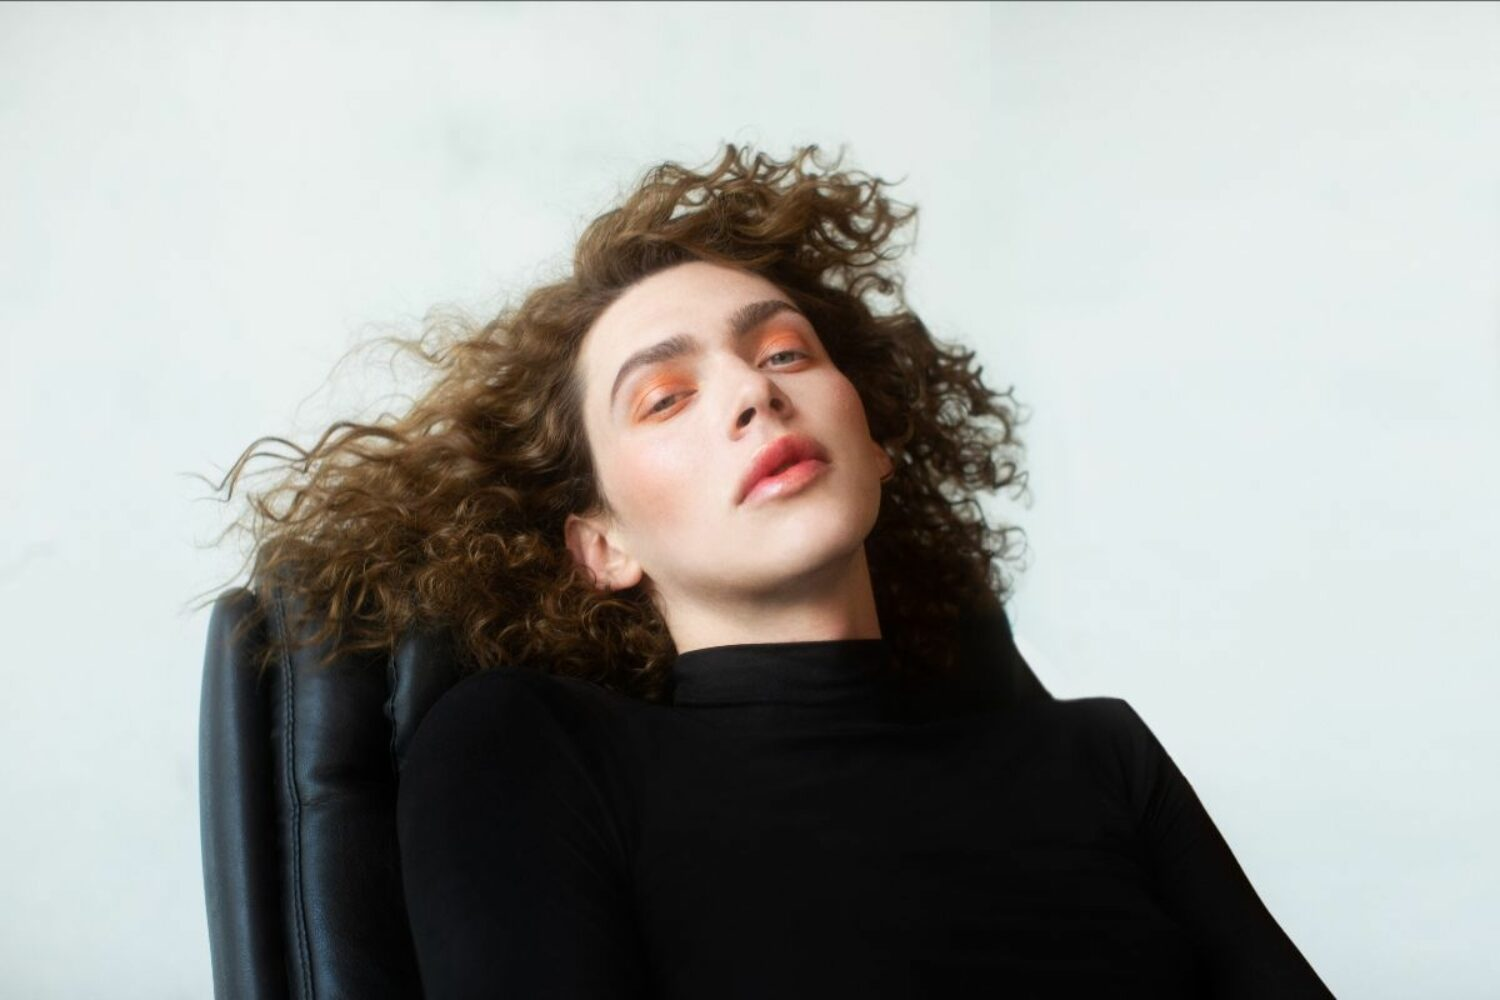 SOPHIE to share livestream performance tonight